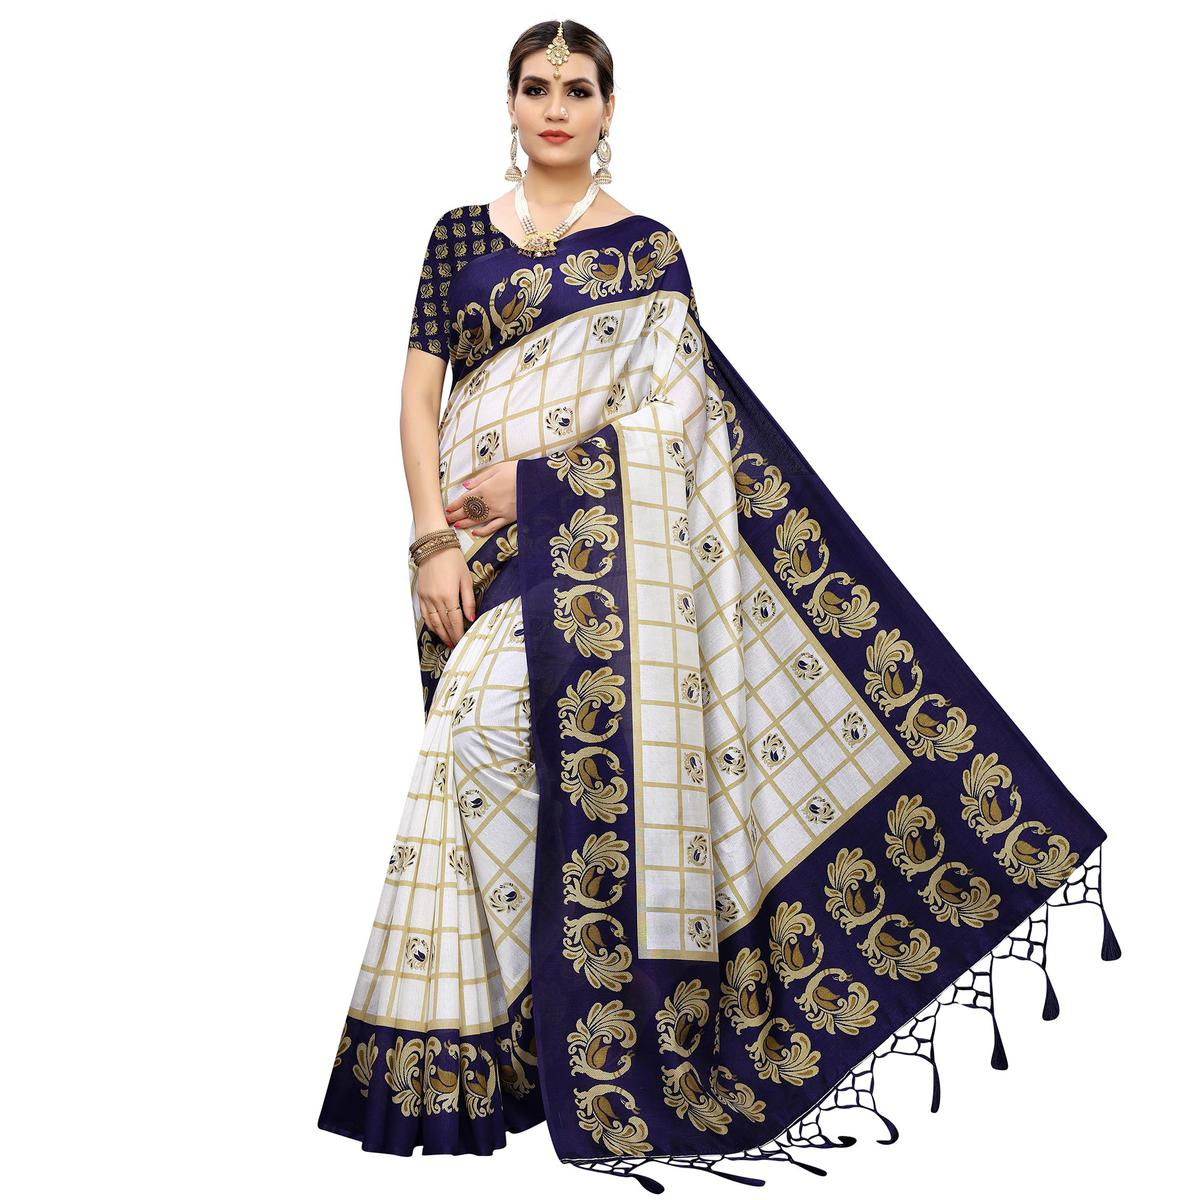 Radiant White-Navy Blue Colored Casual Wear Printed Art Silk Saree With Tassles